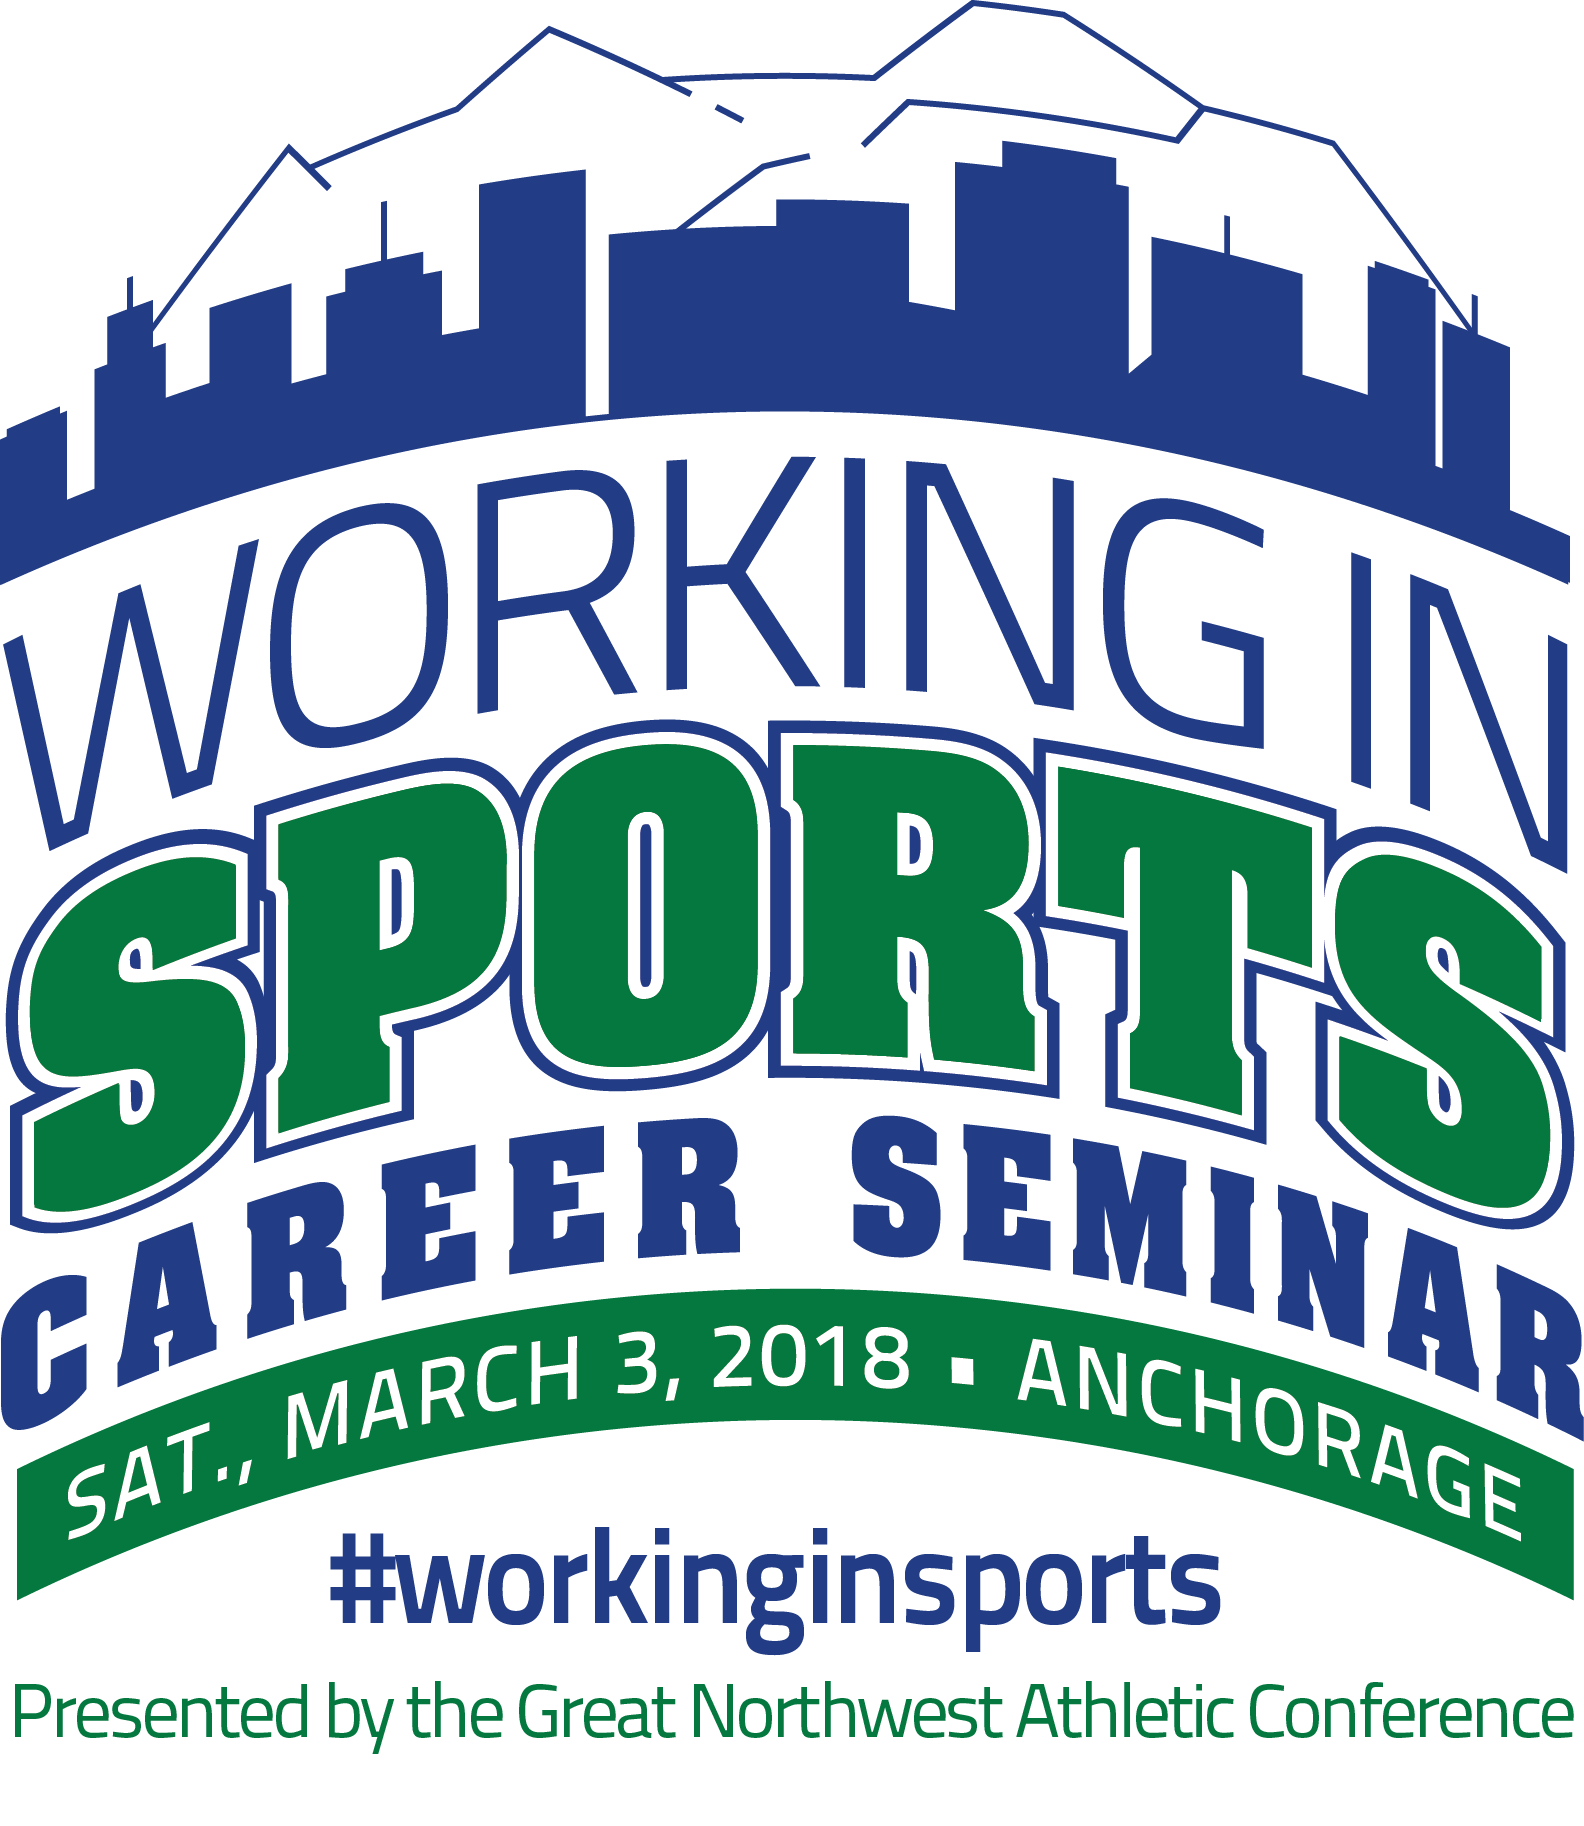 Working in Sports Career Seminar Logo